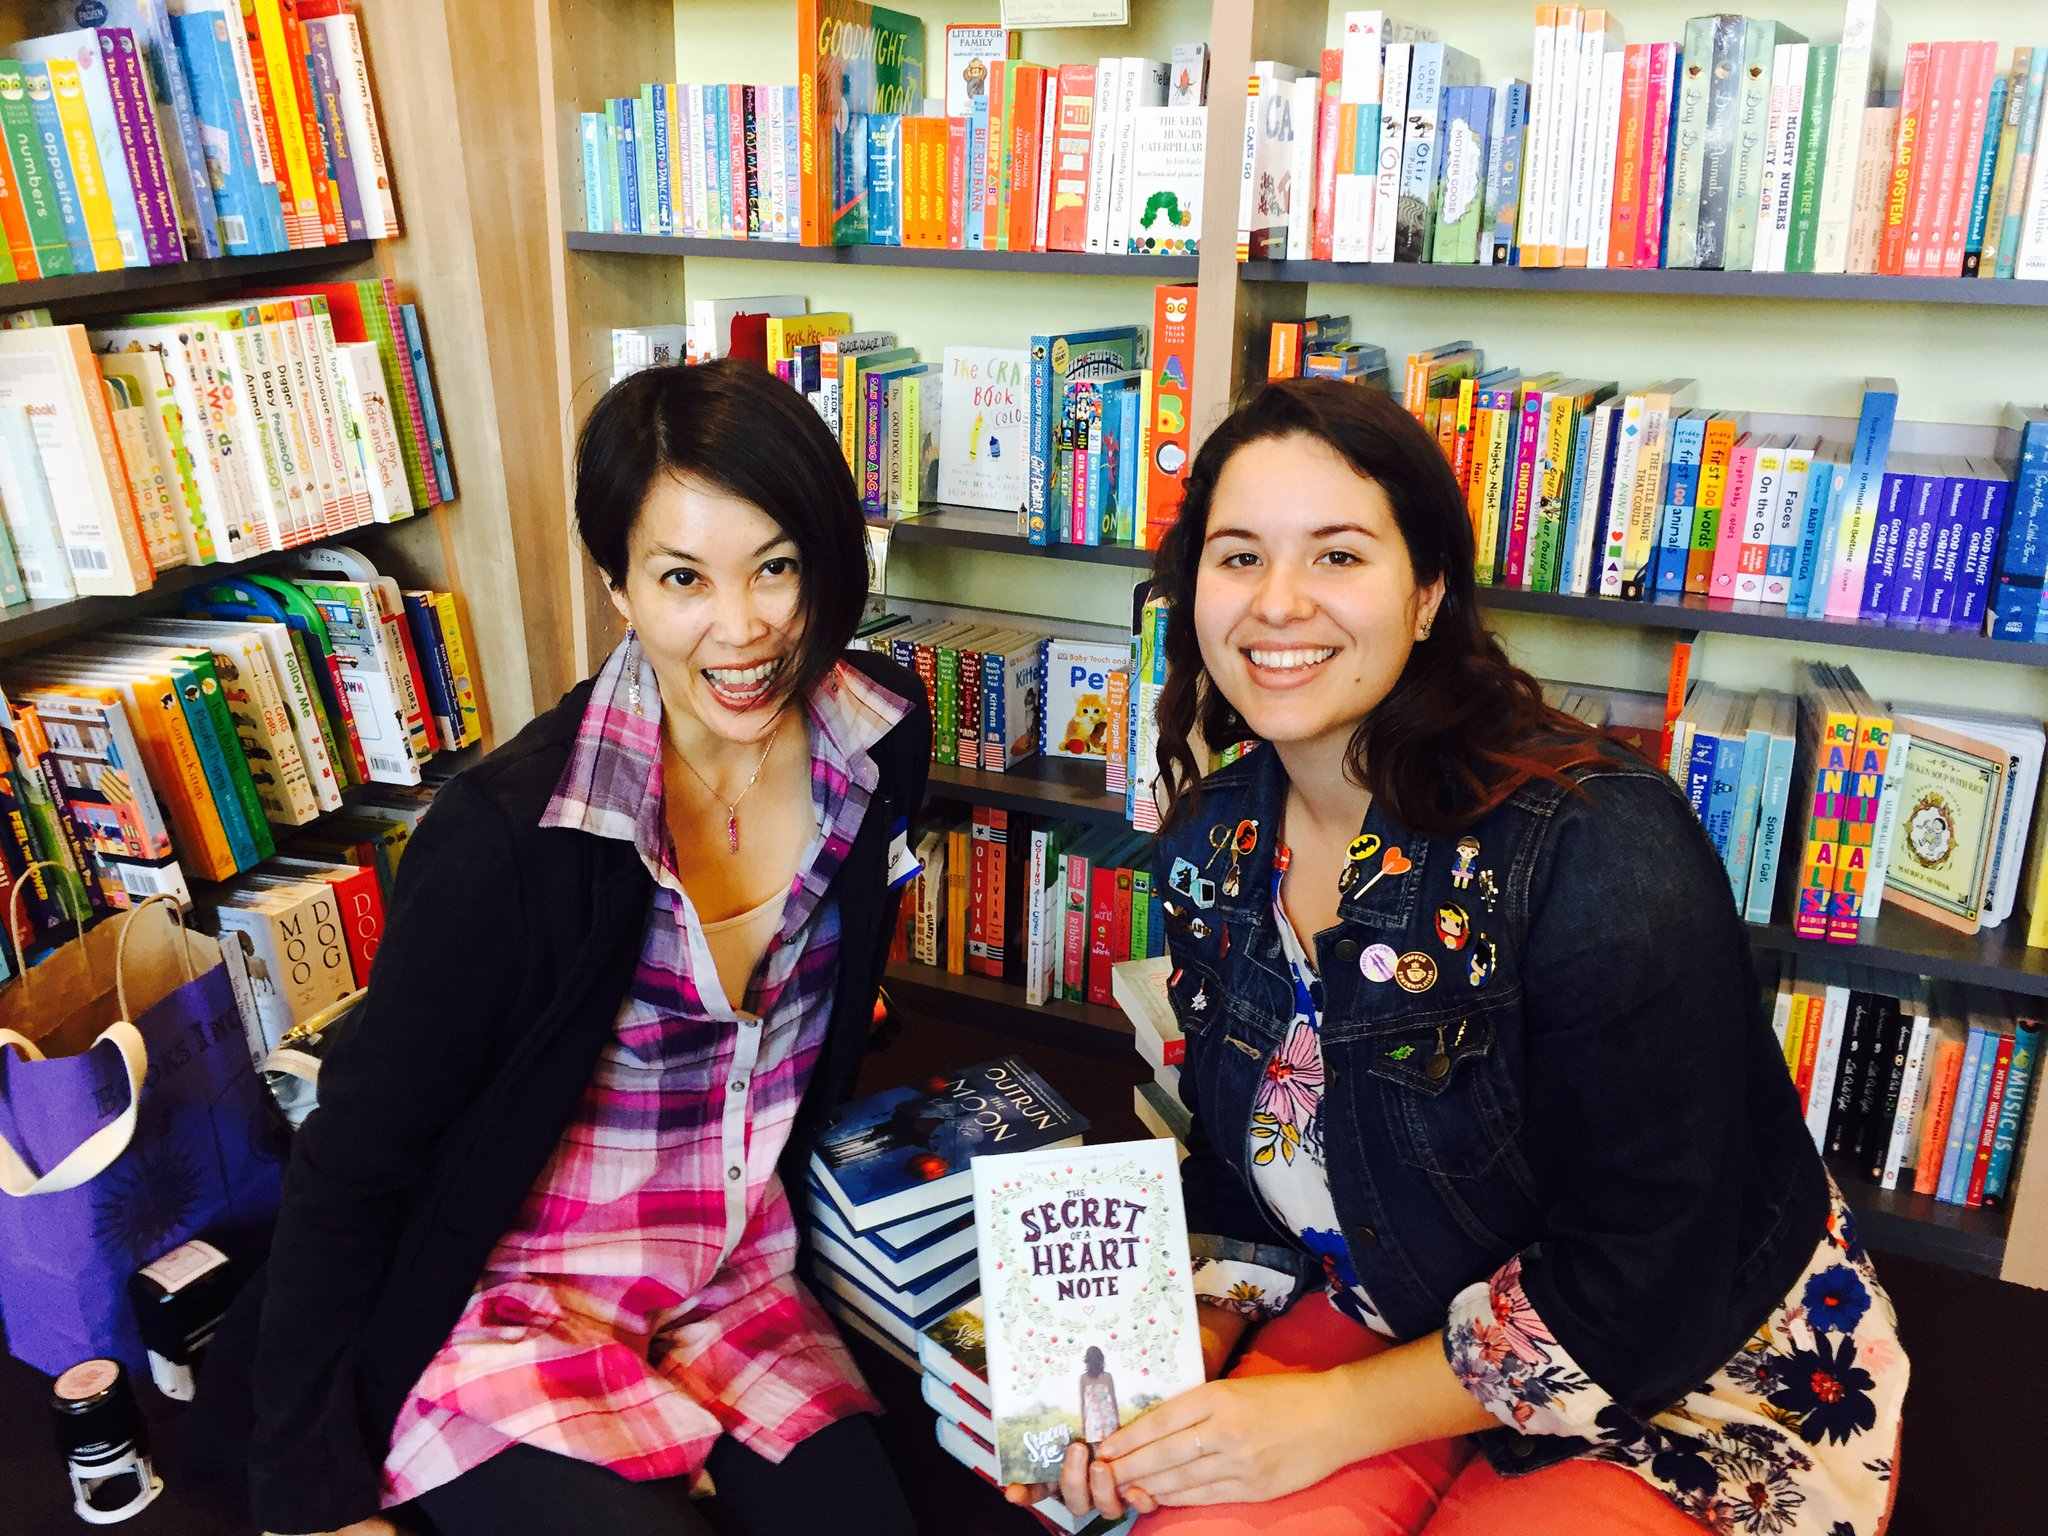 Author Stacey Lee and NYMBC Coordinator Hannah